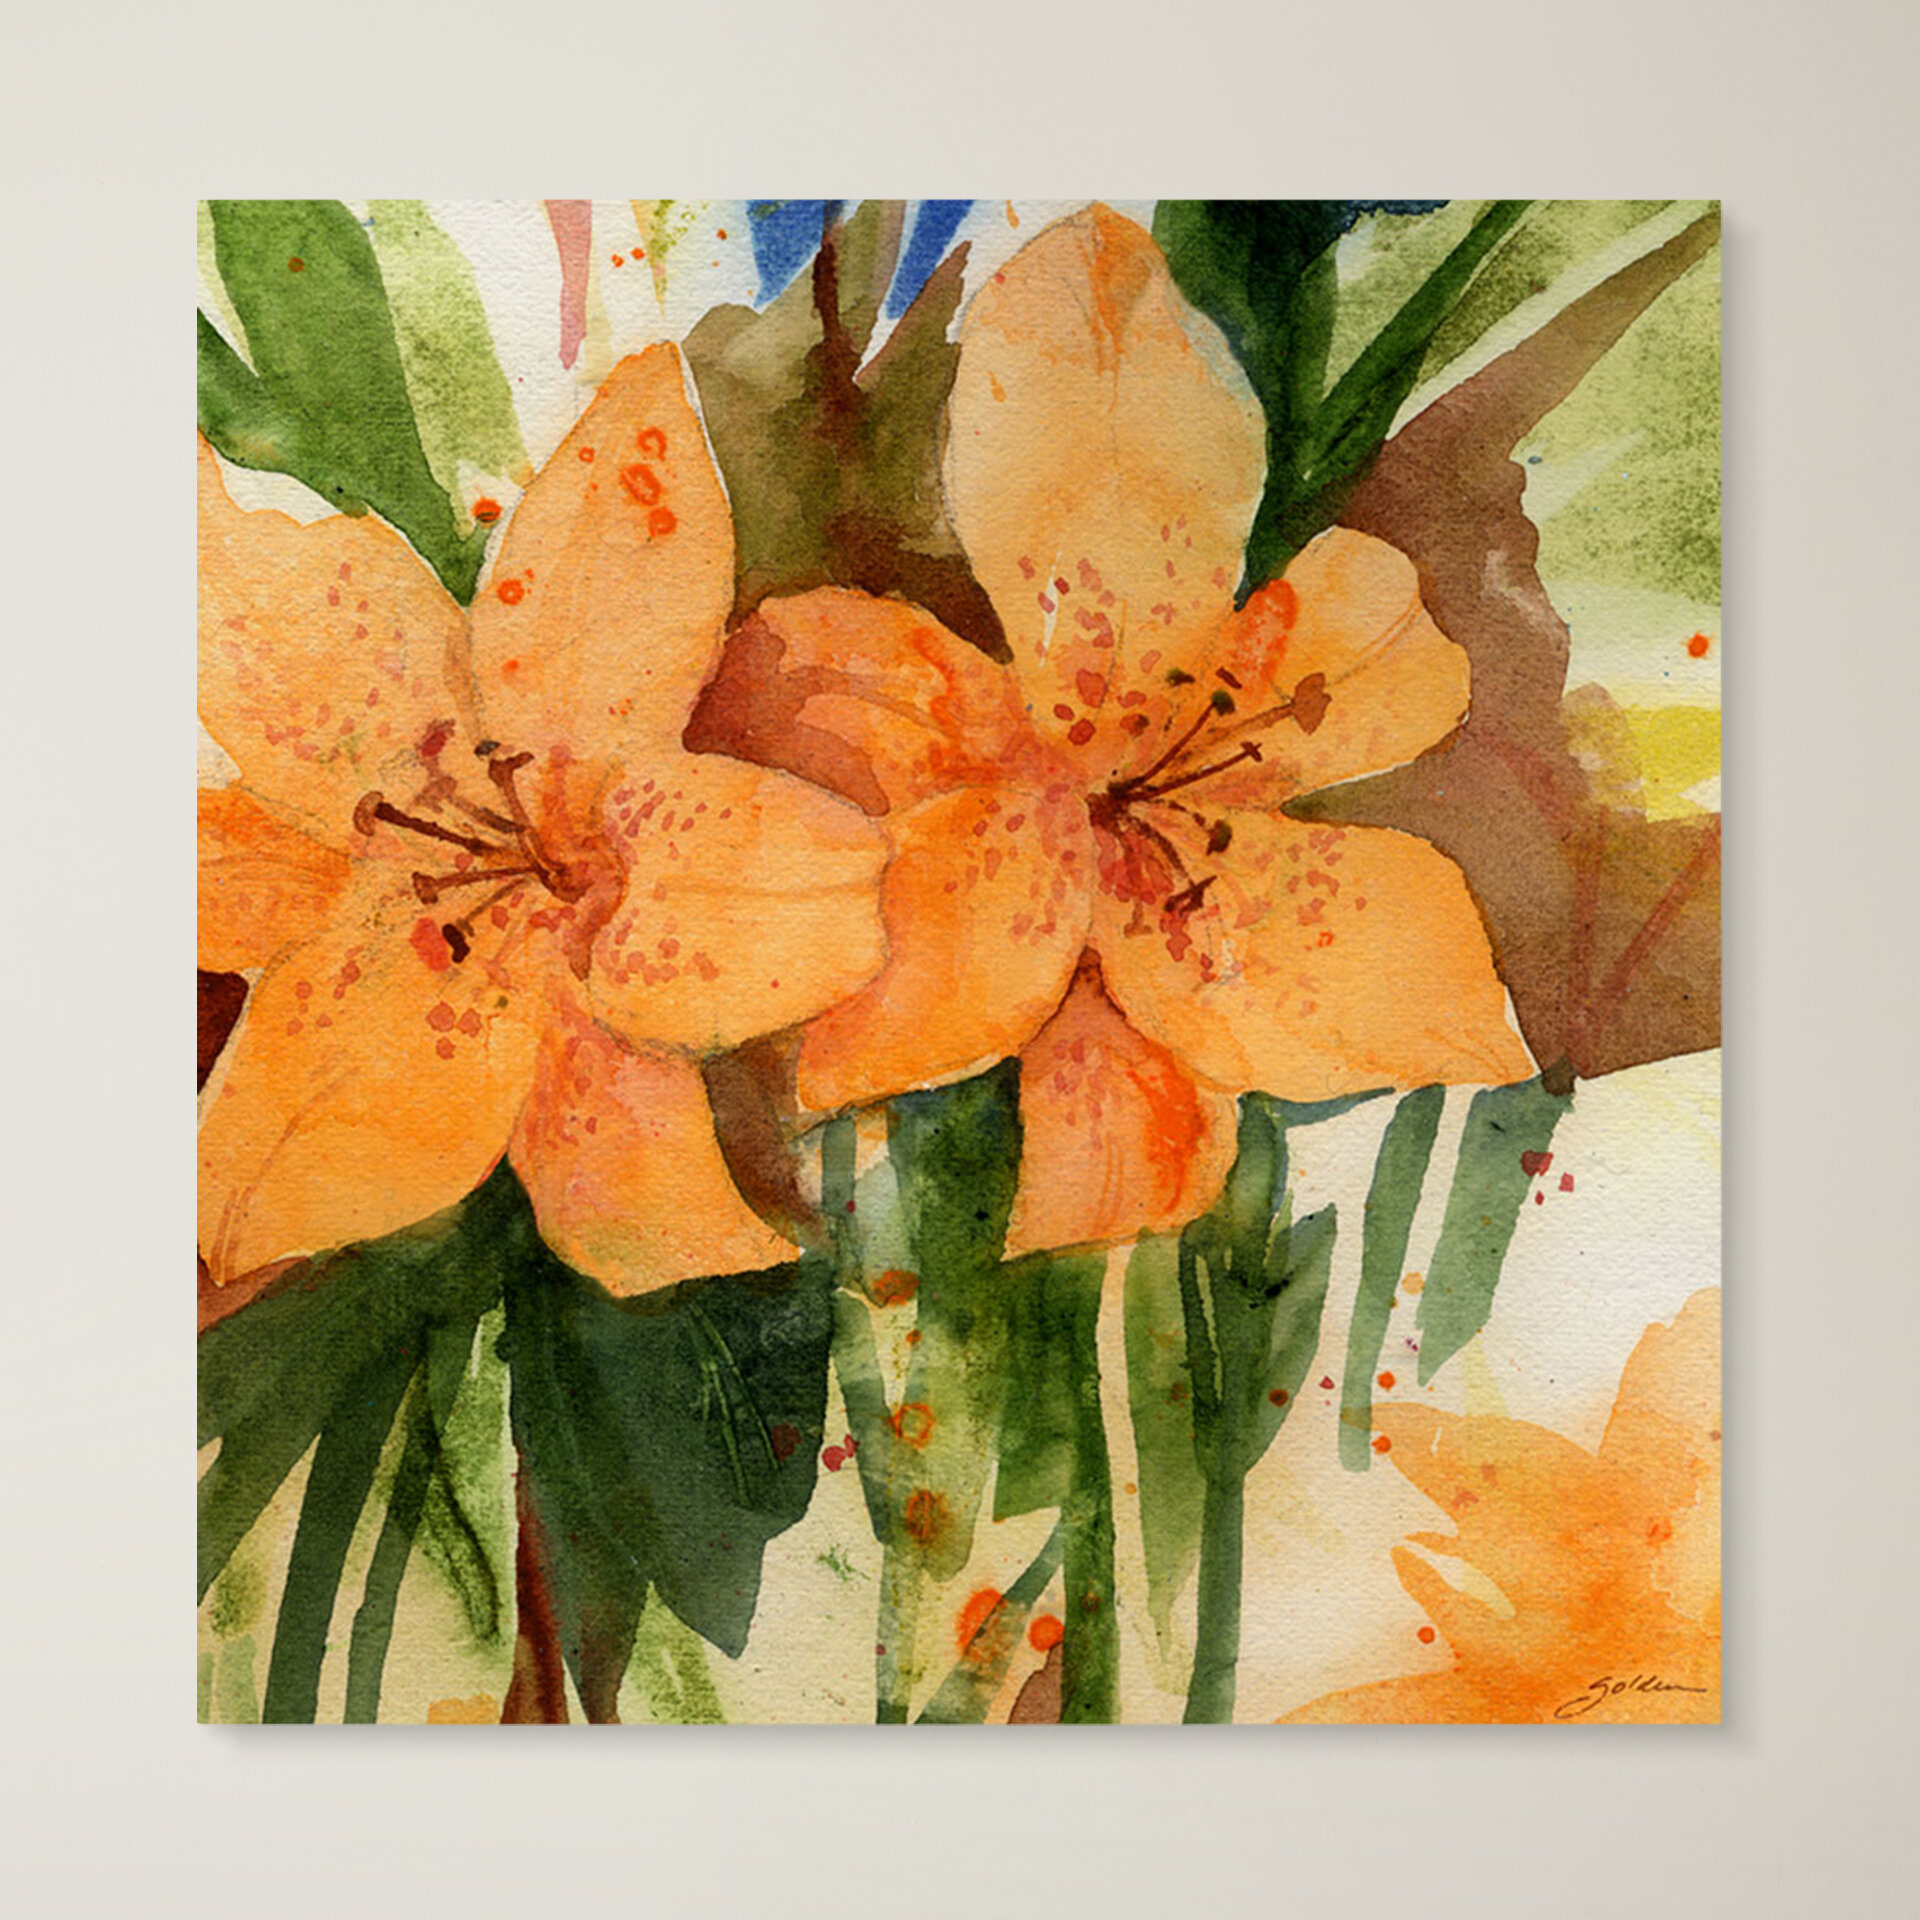 Trademark Art Tiger Lilies Painting Print On Canvas Reviews